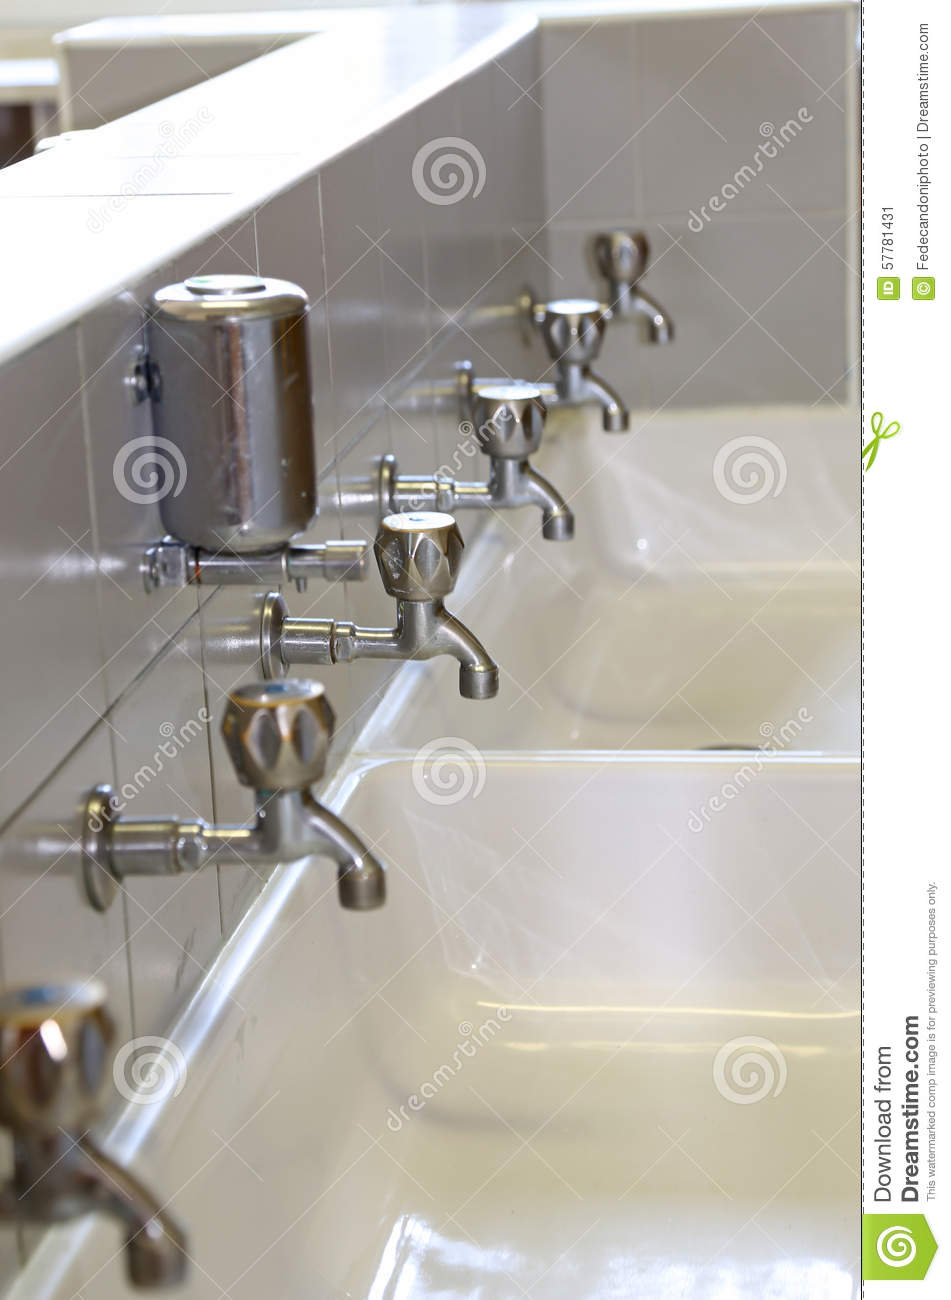 Taps At The Sink In The Bathroom Of School Stock Image - Image of ...